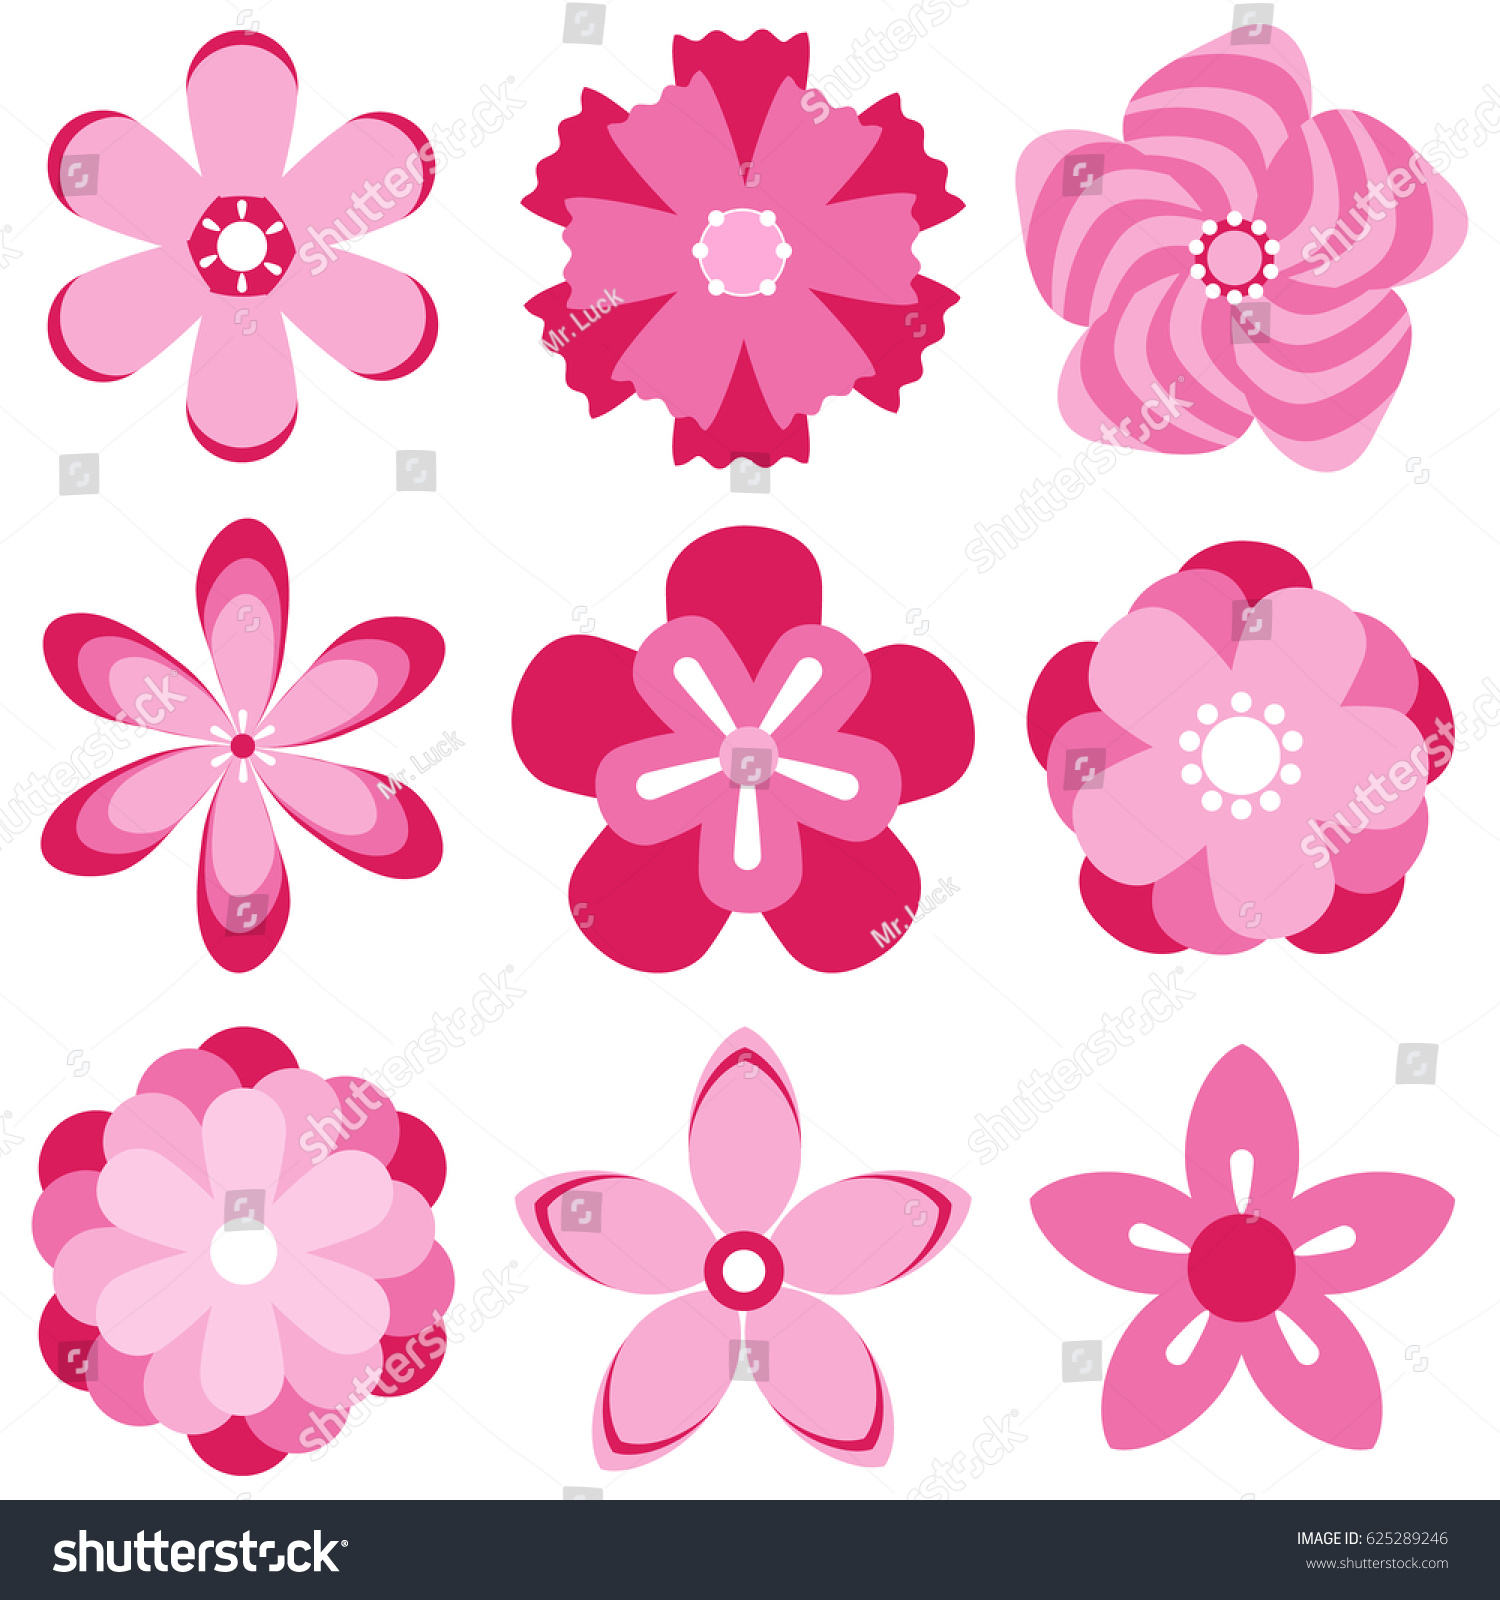 Sakura Cherry Blossom Japanese Cherry Blossoms Stock Vector ...